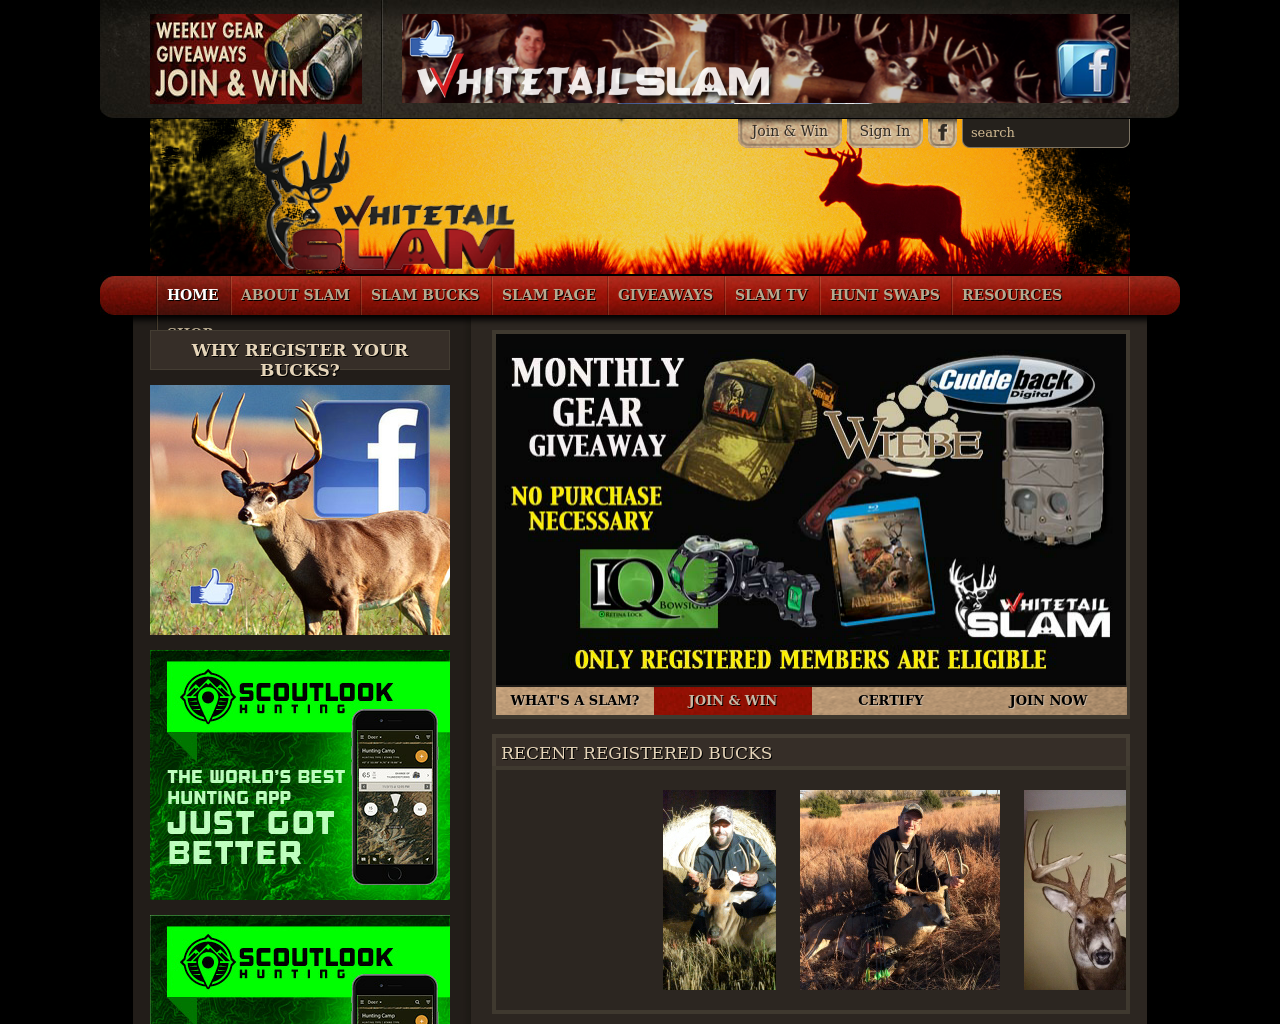 Whitetail-Slam-Advertising-Reviews-Pricing